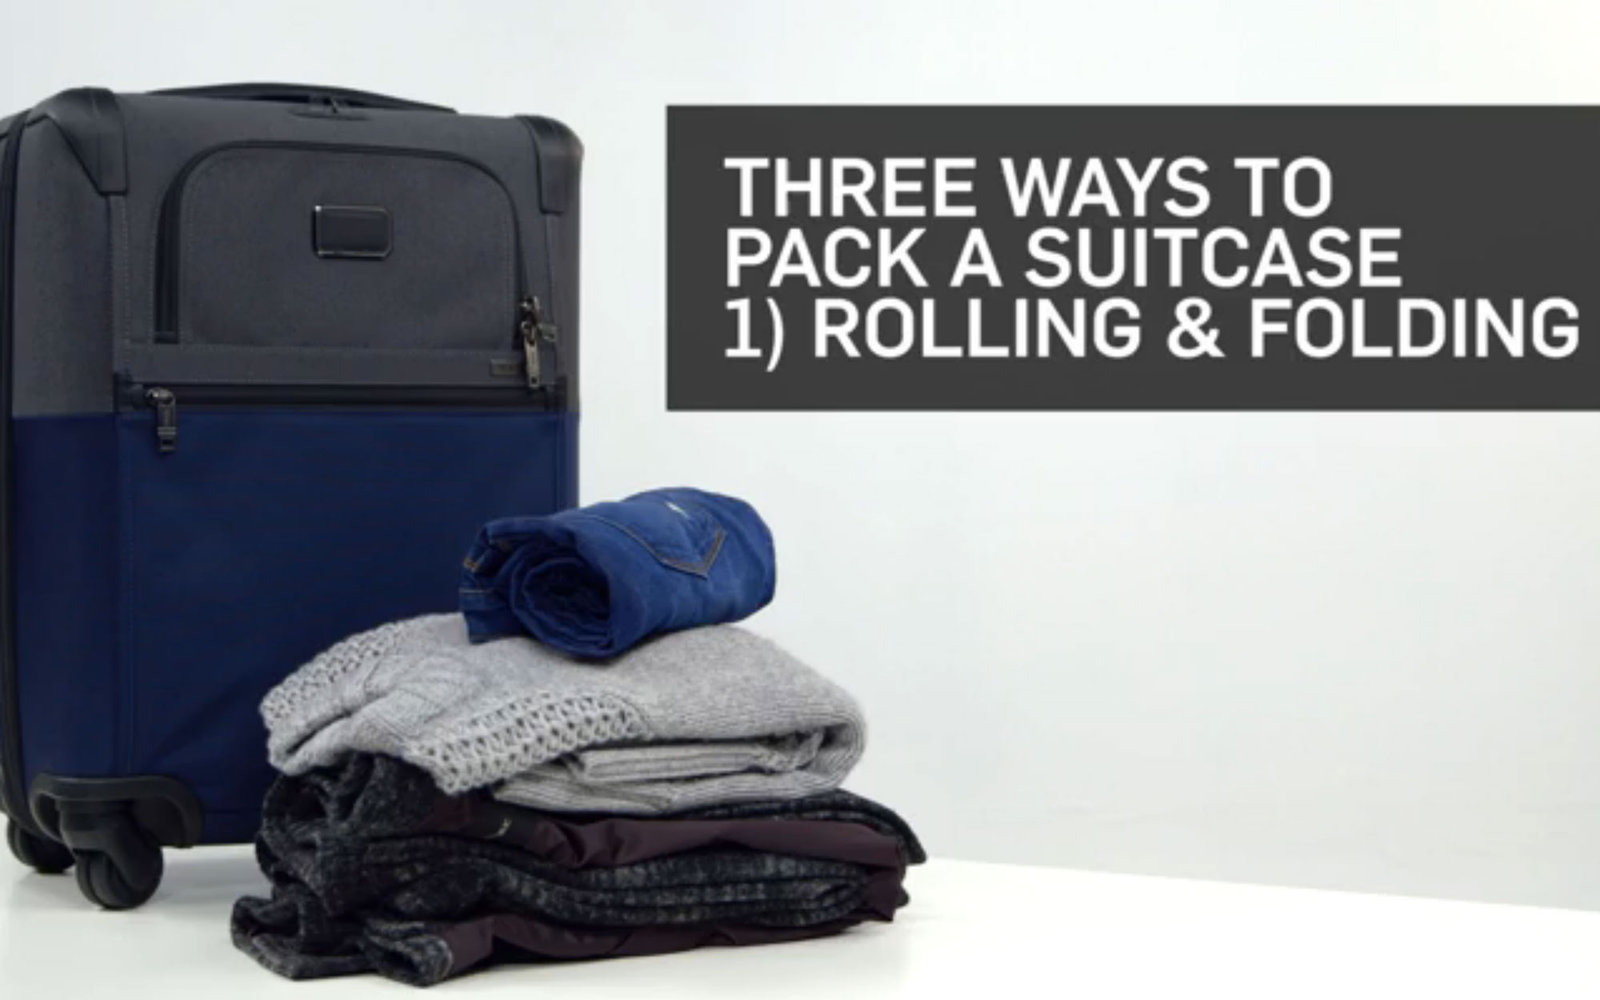 VIDEO: How to Roll and Fold Your Clothes When Packing